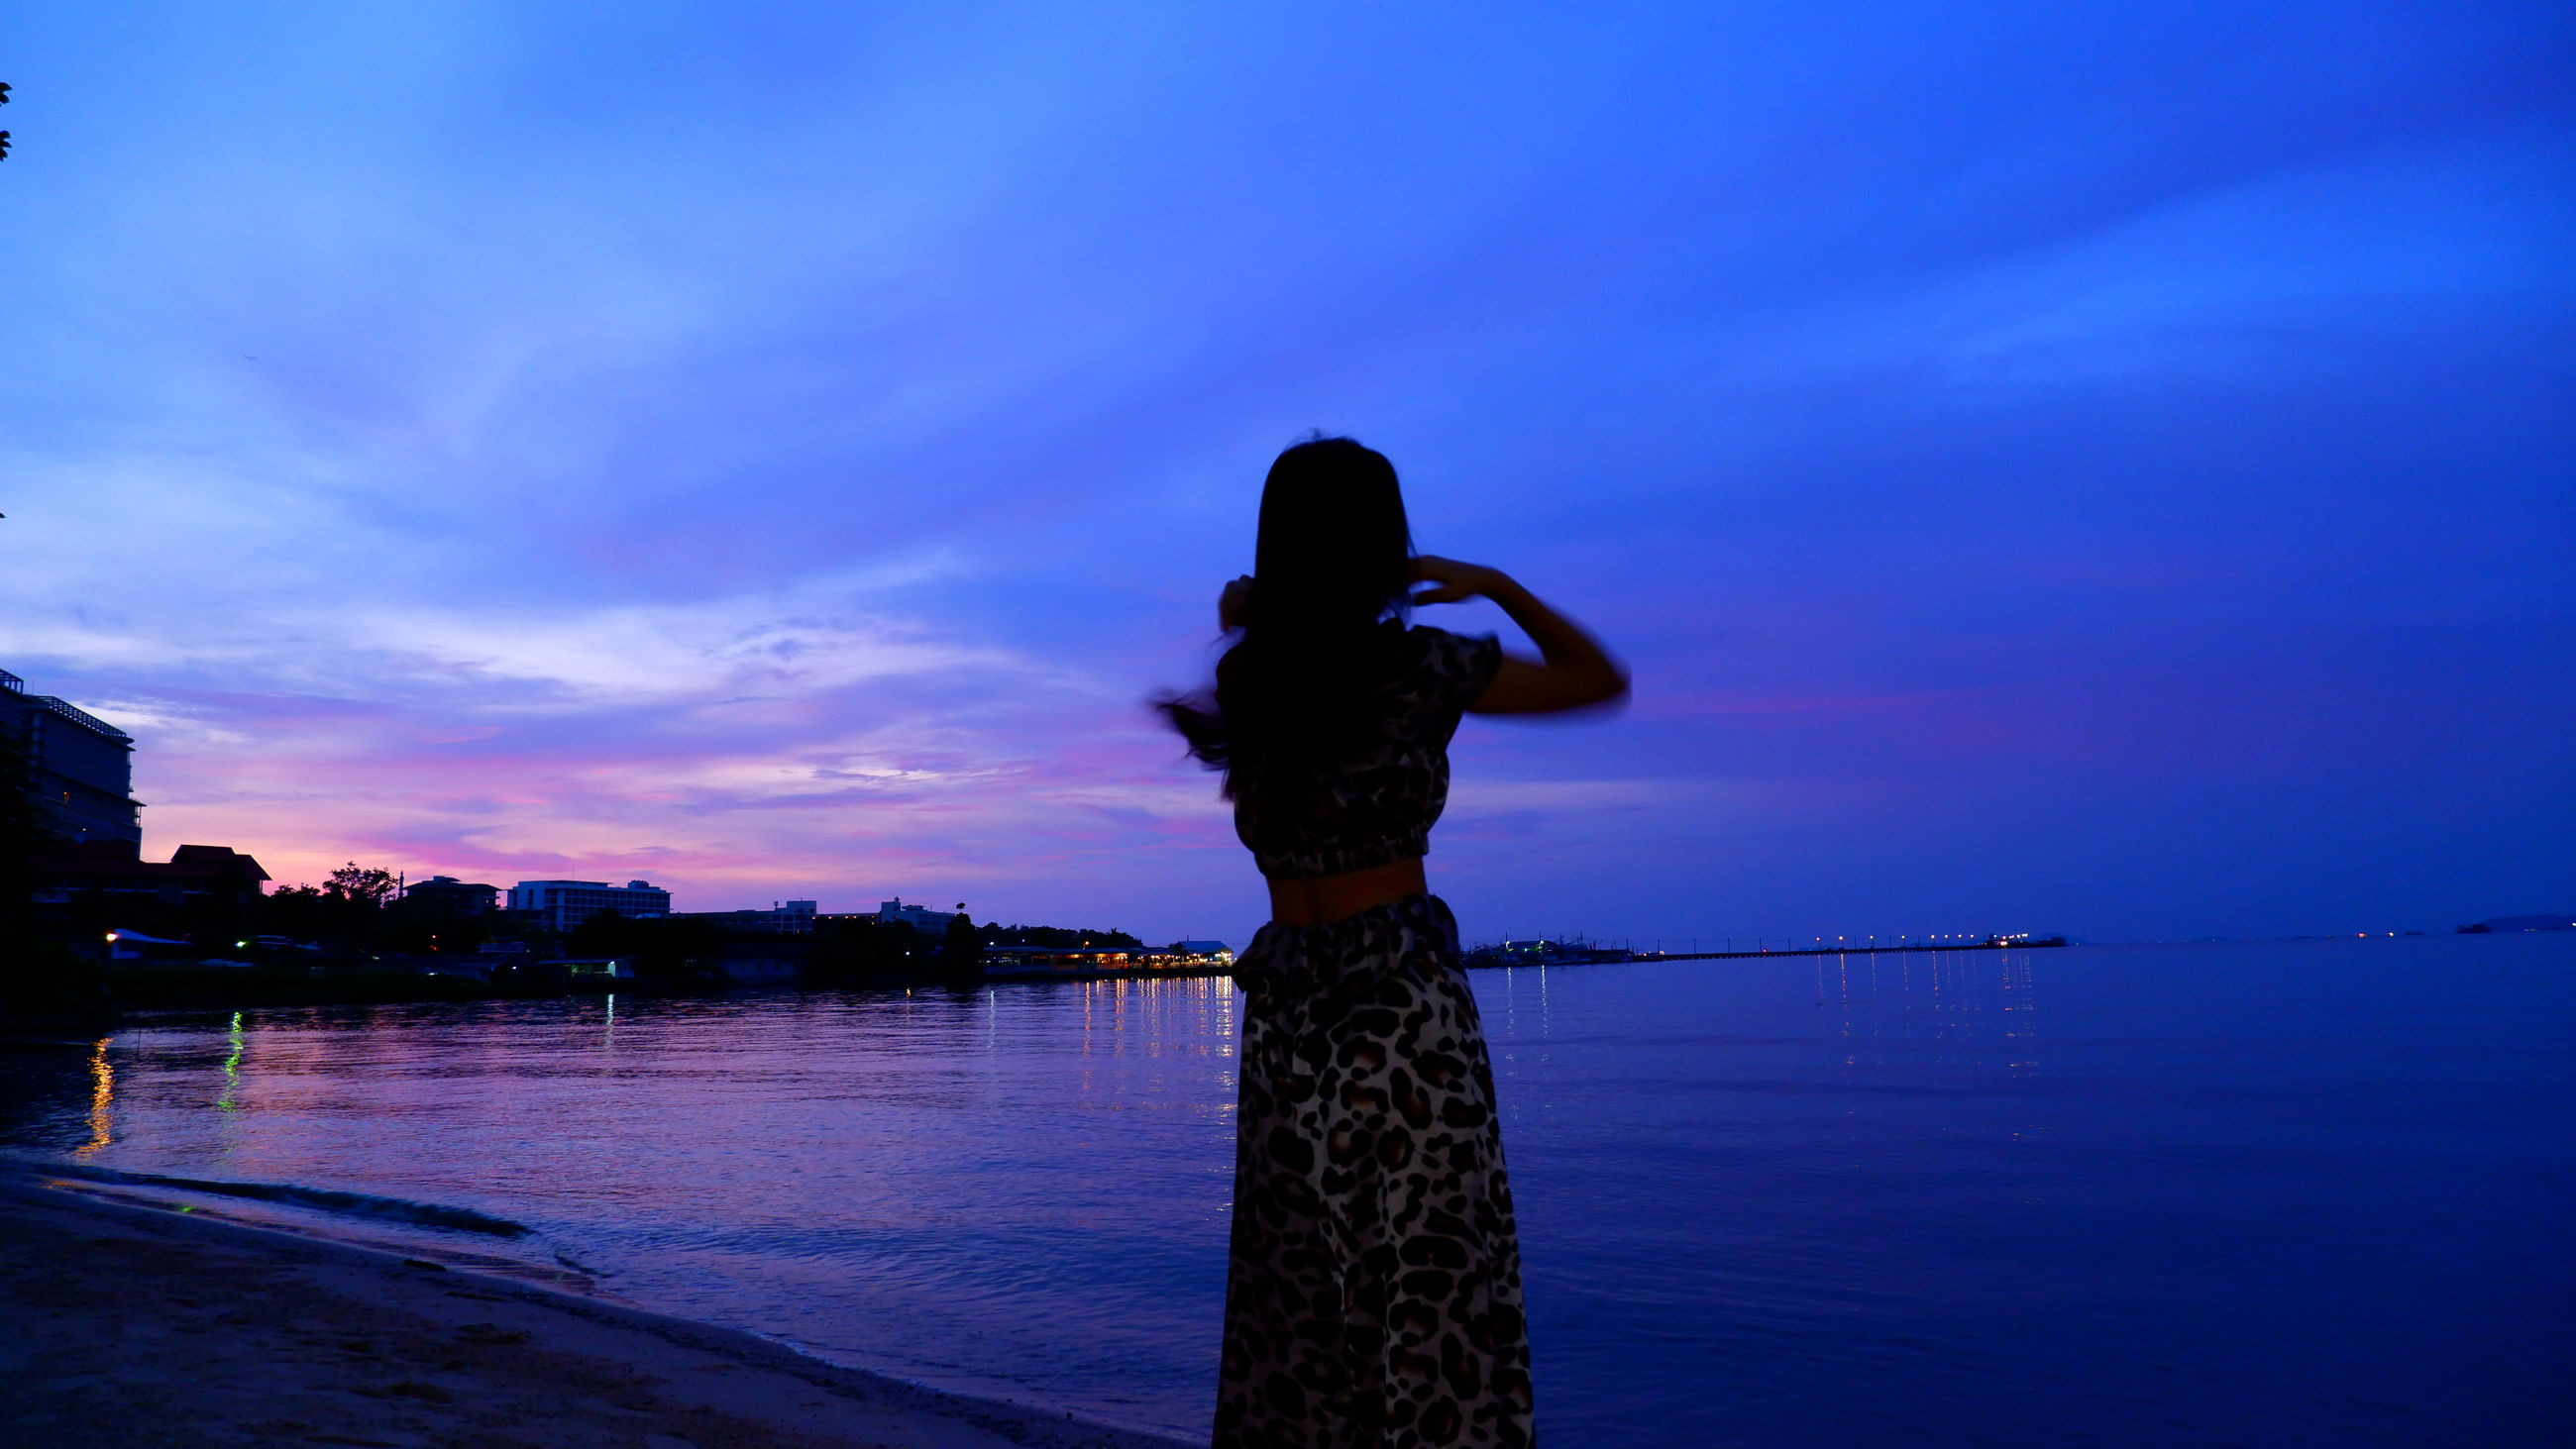 sky, water, reflection, one person, evening, blue, dusk, sunset, nature, horizon, silhouette, cloud, sea, adult, beauty in nature, women, standing, darkness, outdoors, tranquility, scenics - nature, architecture, lifestyles, beach, land, sunlight, ocean, tranquil scene